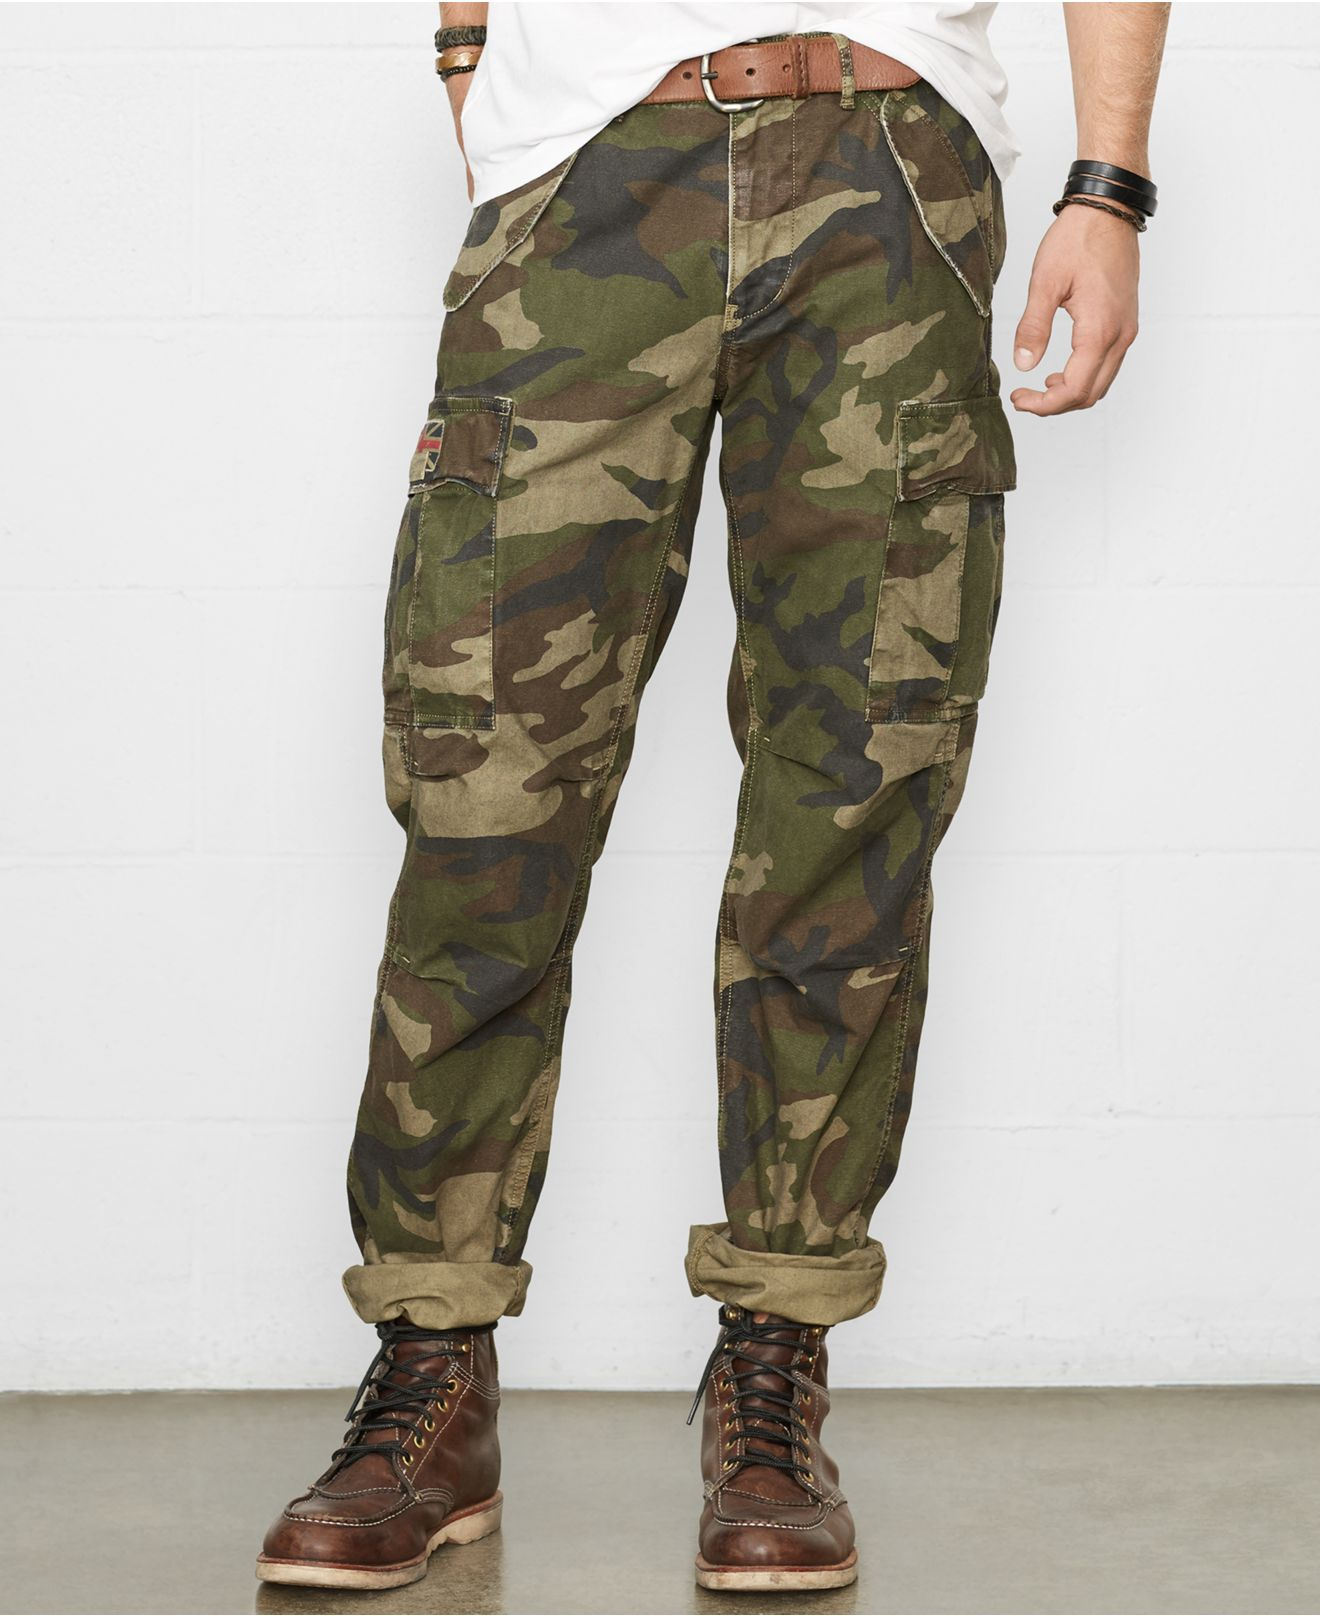 Shop for wrangler camouflage cargo pants online at Target. Free shipping on purchases over $35 and save 5% every day with your Target REDcard.